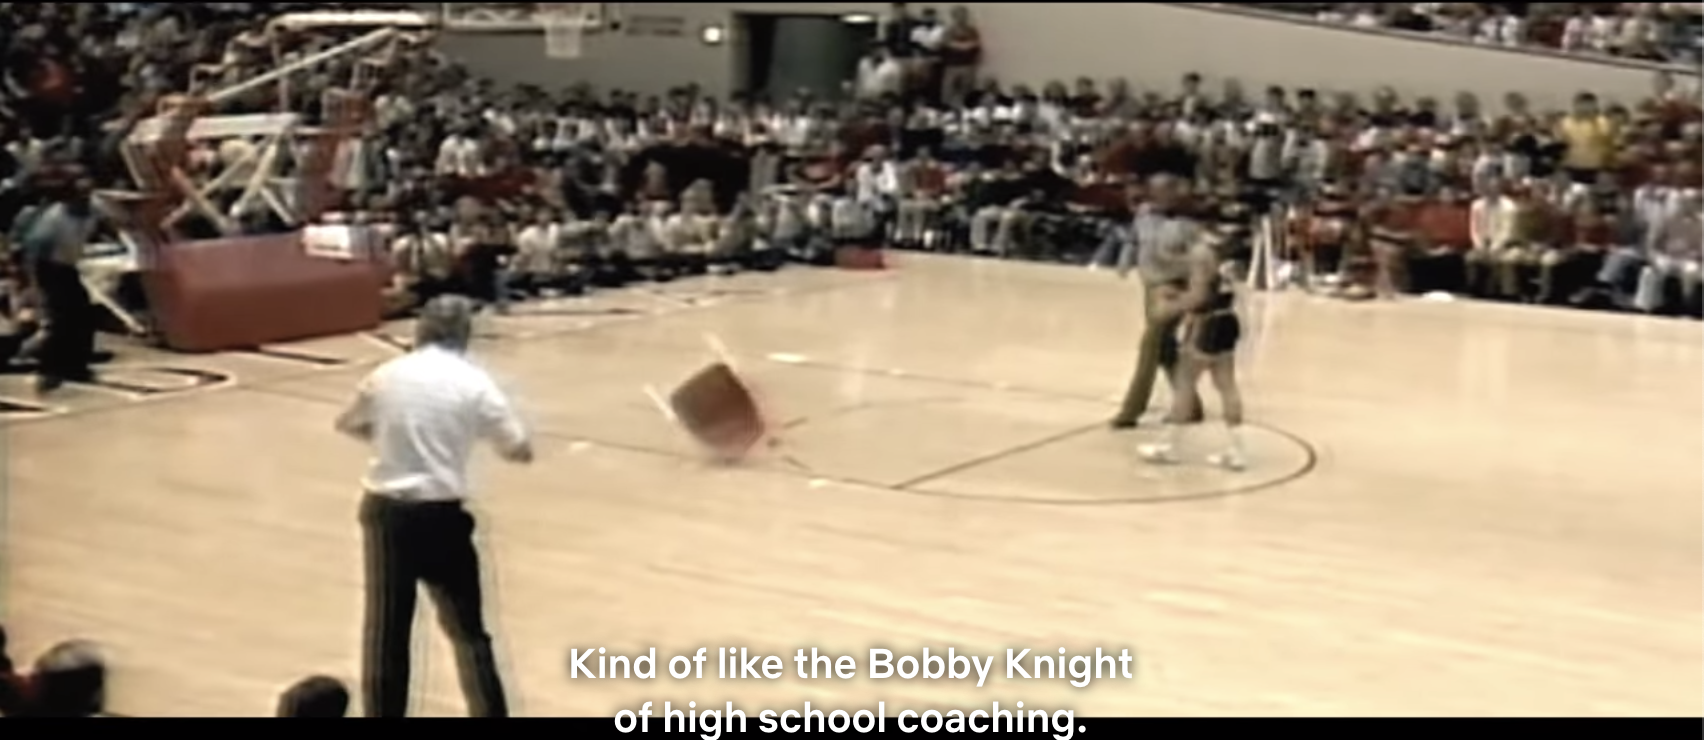 Singer throwing a chair in the middle of the court during a basketball game